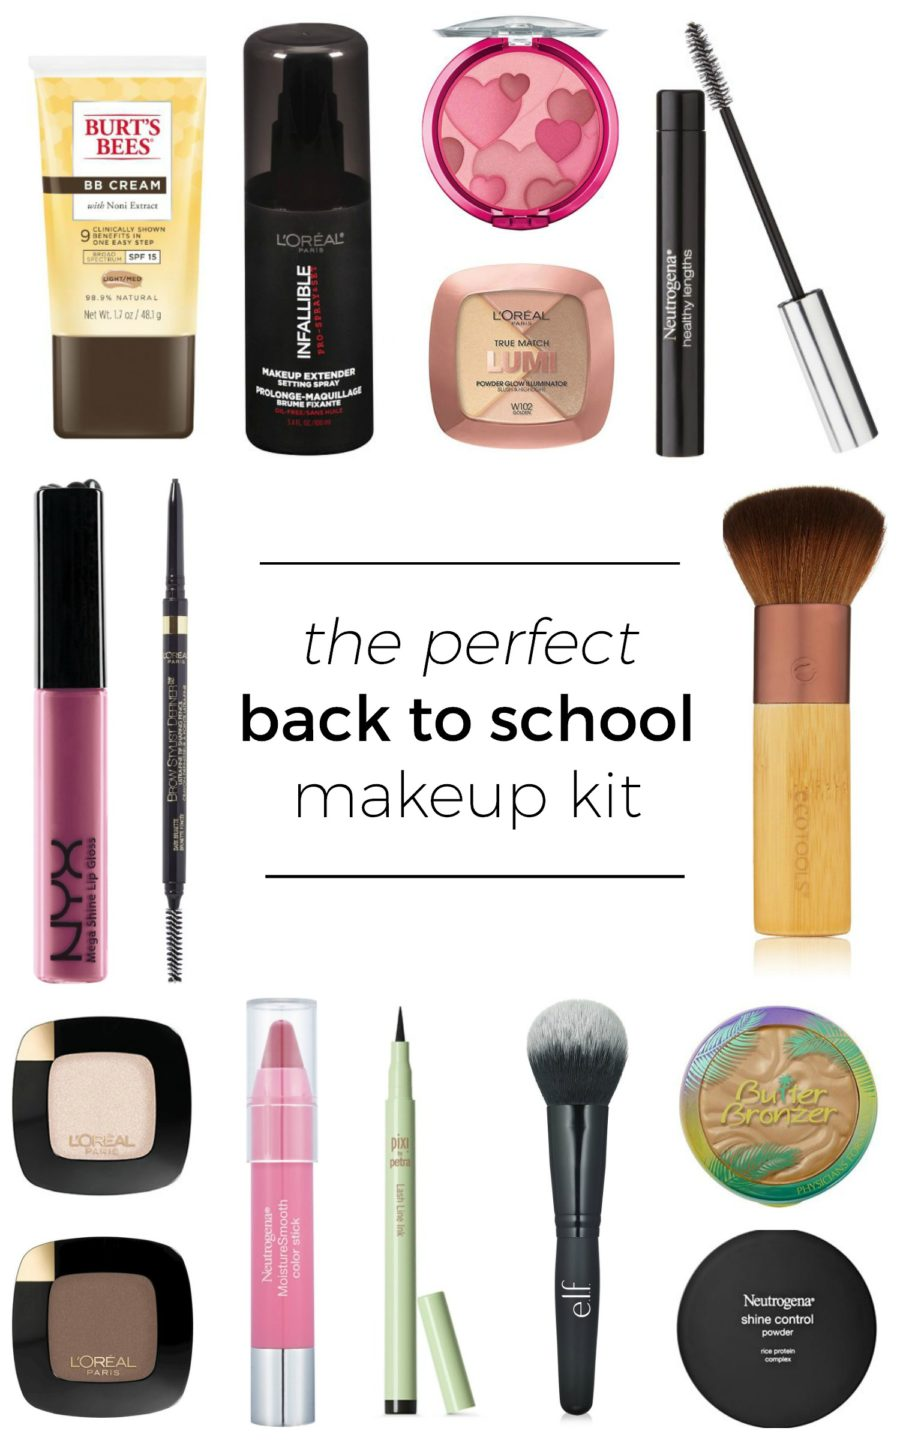 The Perfect Back to School Makeup Kit